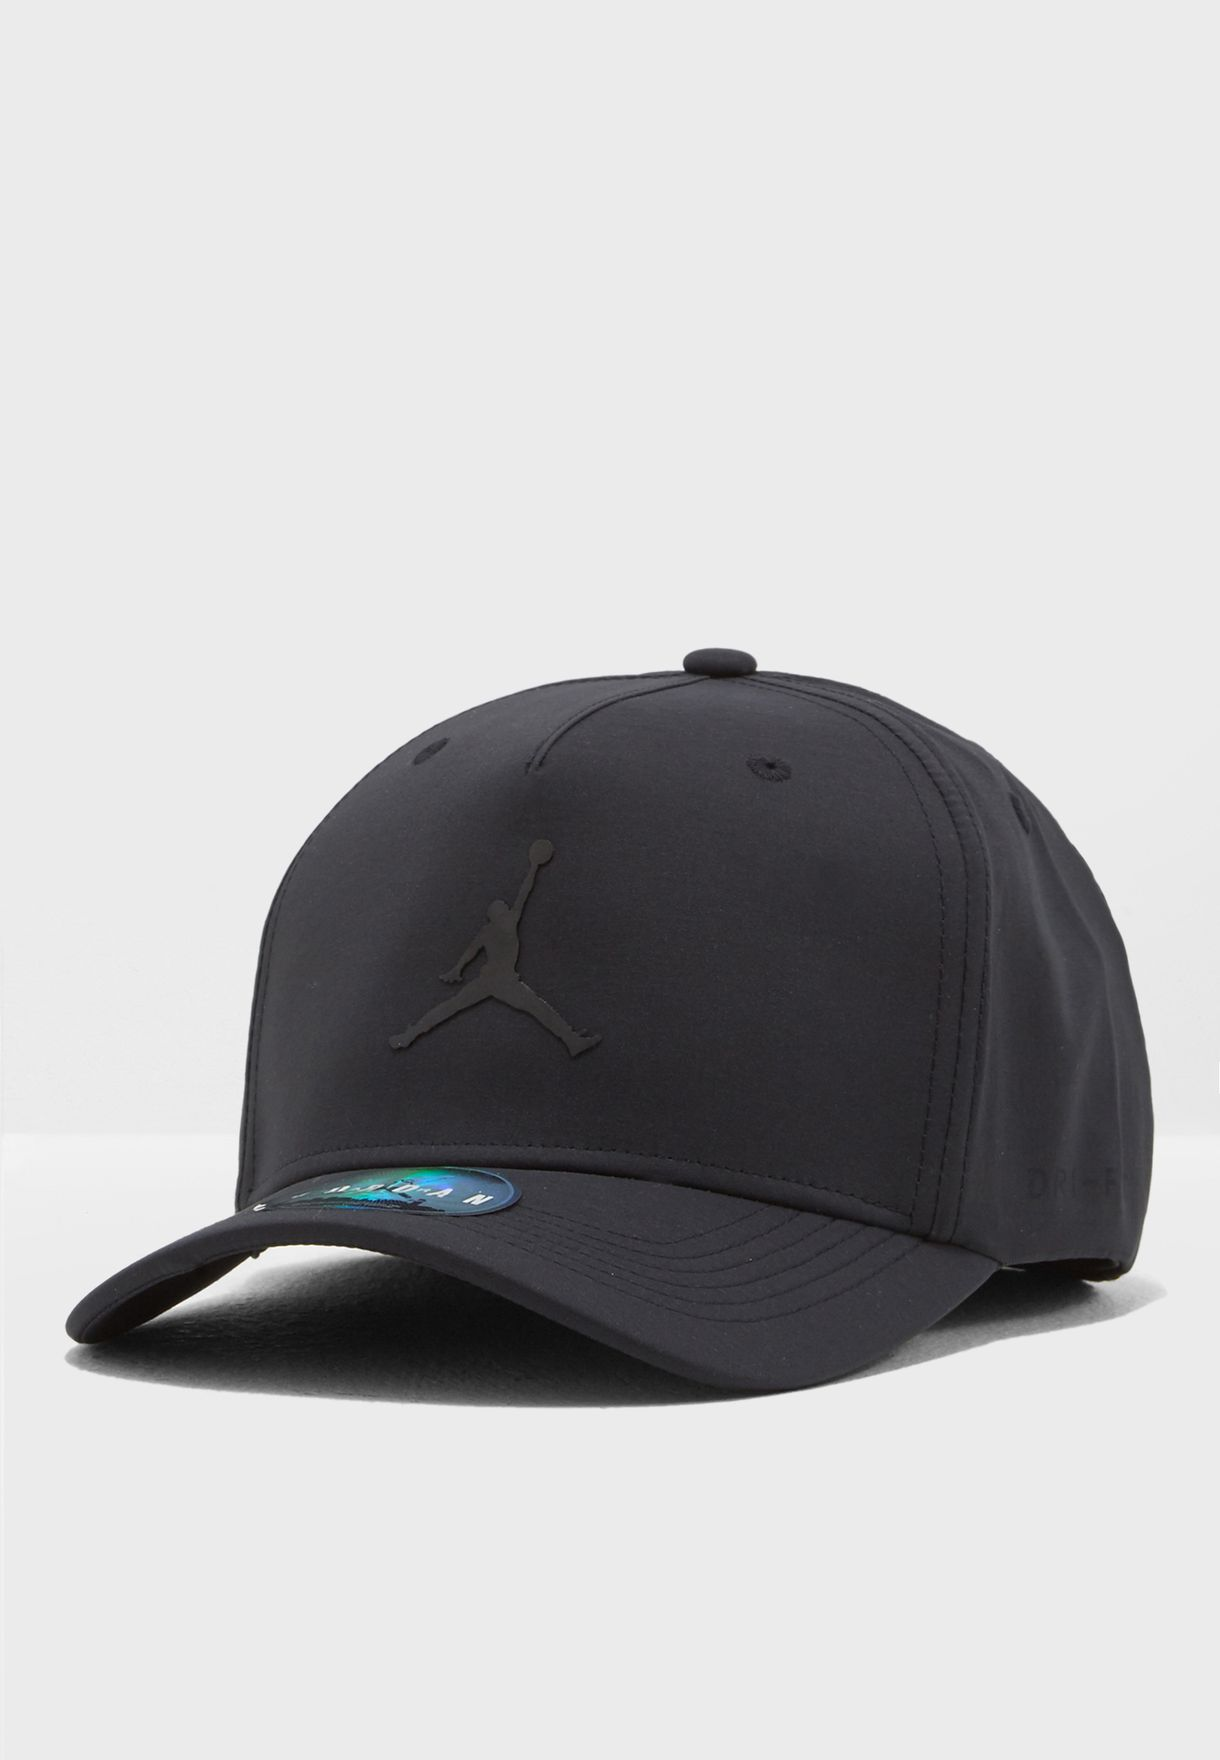 9833bca5 Shop Nike black Jordan Jumpman Classic 99 Cap 897559-010 for Men in ...